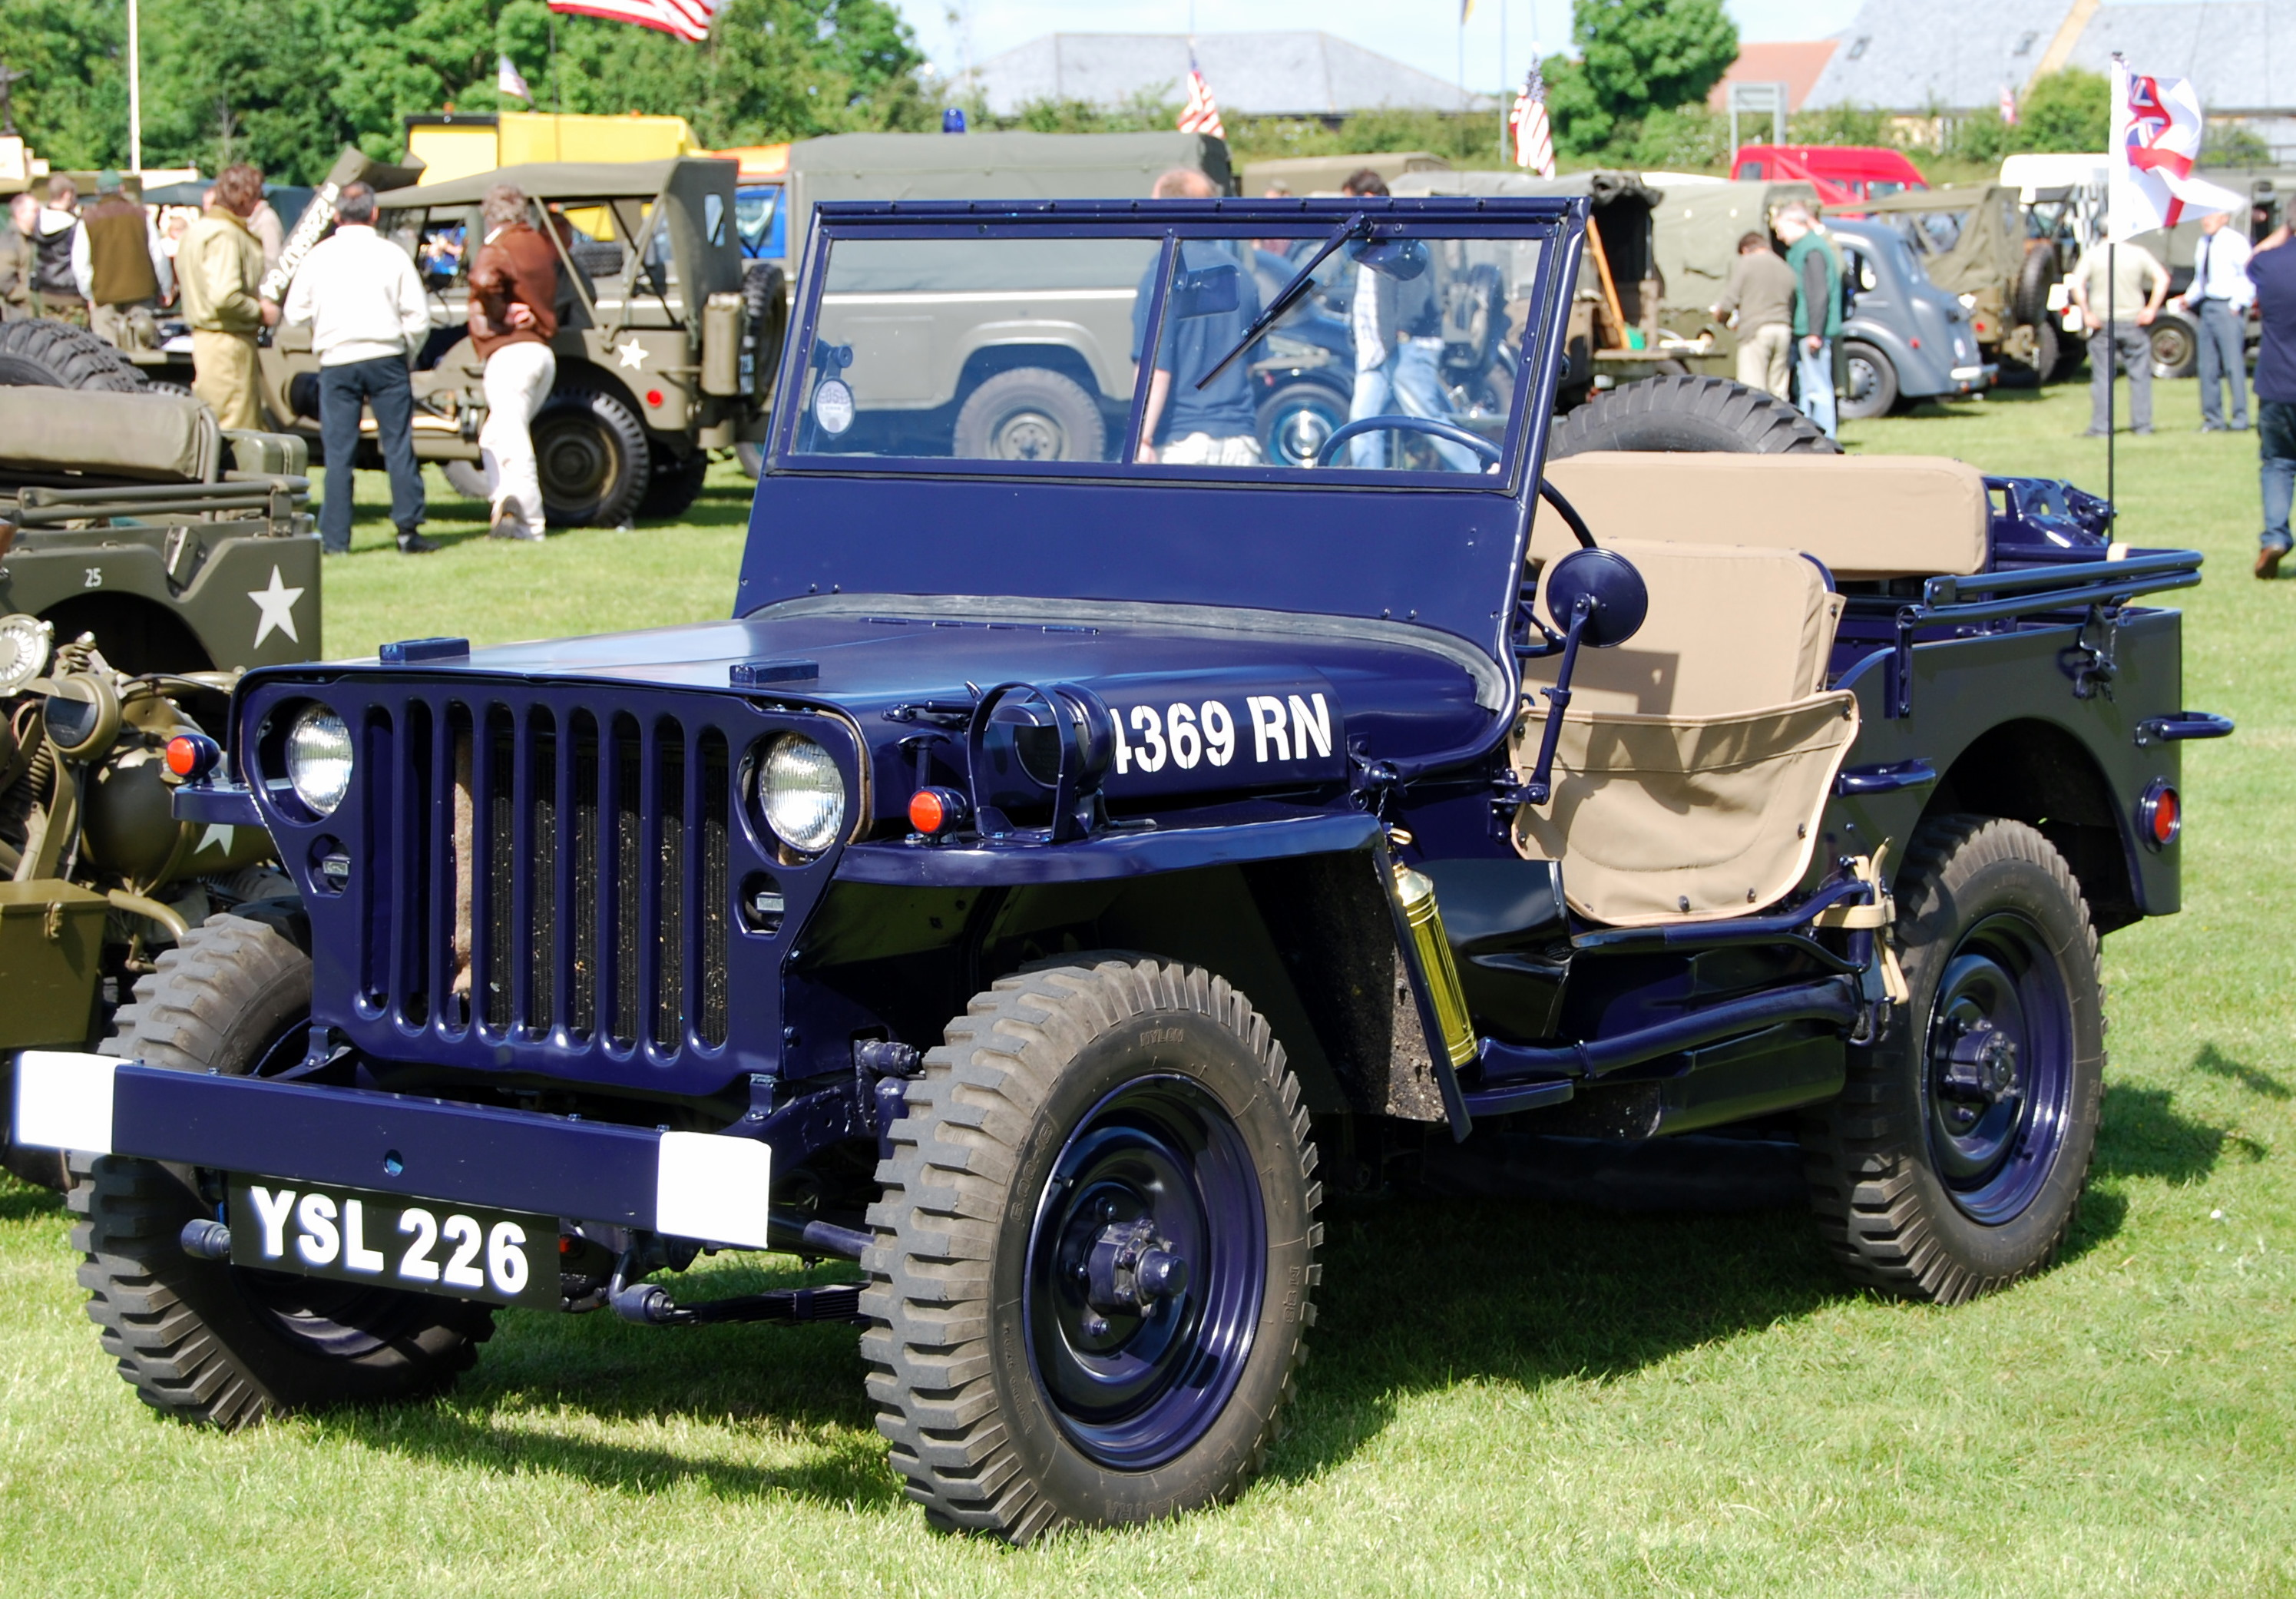 Royal_Navy_Jeep%2C_Duxford_Military_Vehi